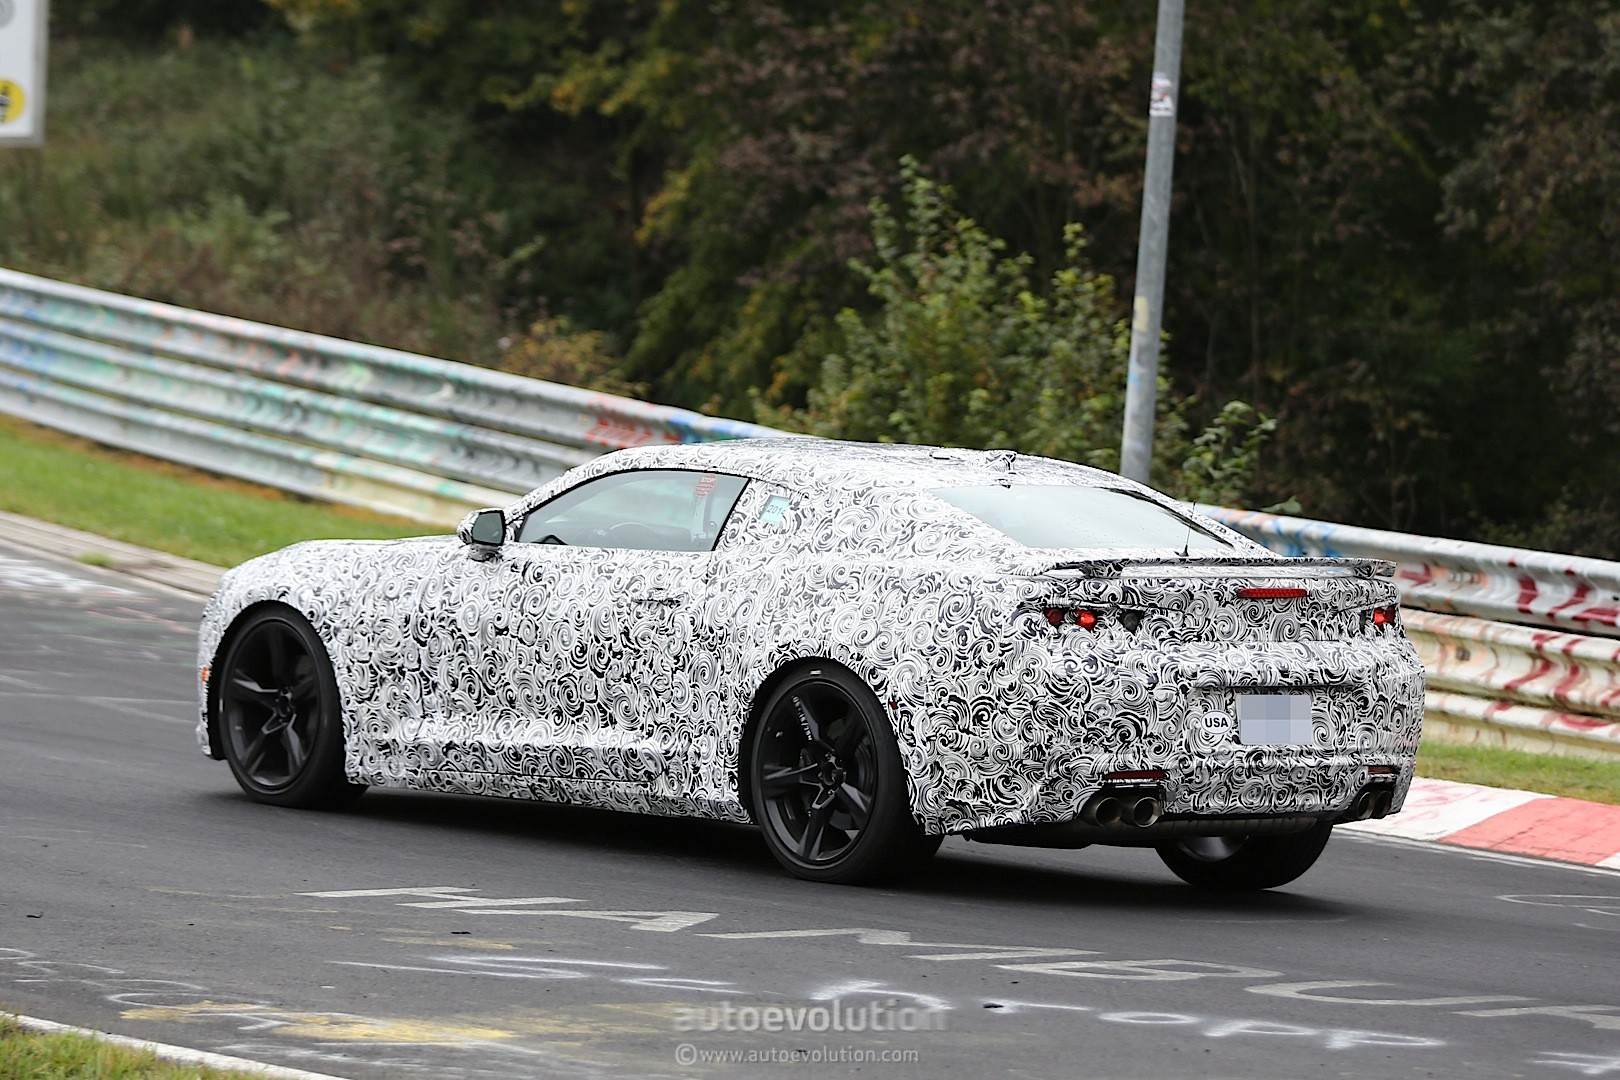 2016 Chevrolet Camaro Details Emerge From Man Close To Gm